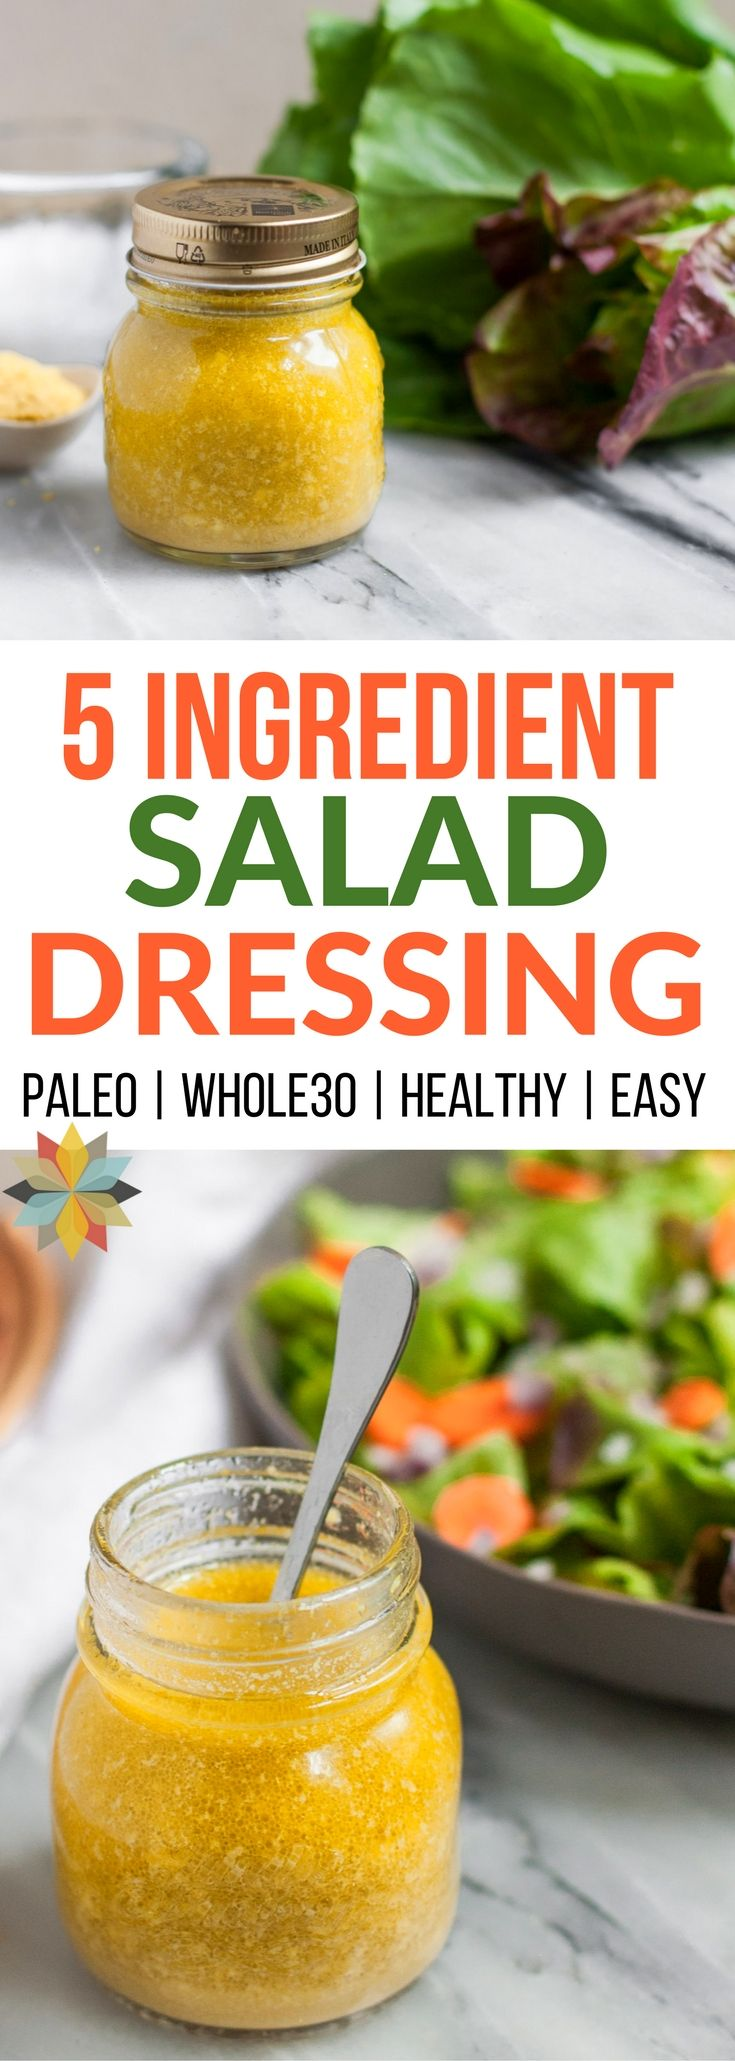 This 5 ingredient nutritional yeast salad dressing is a family fave. It's an easy salad dressing recipe your whole family will love! via @wholenewmom